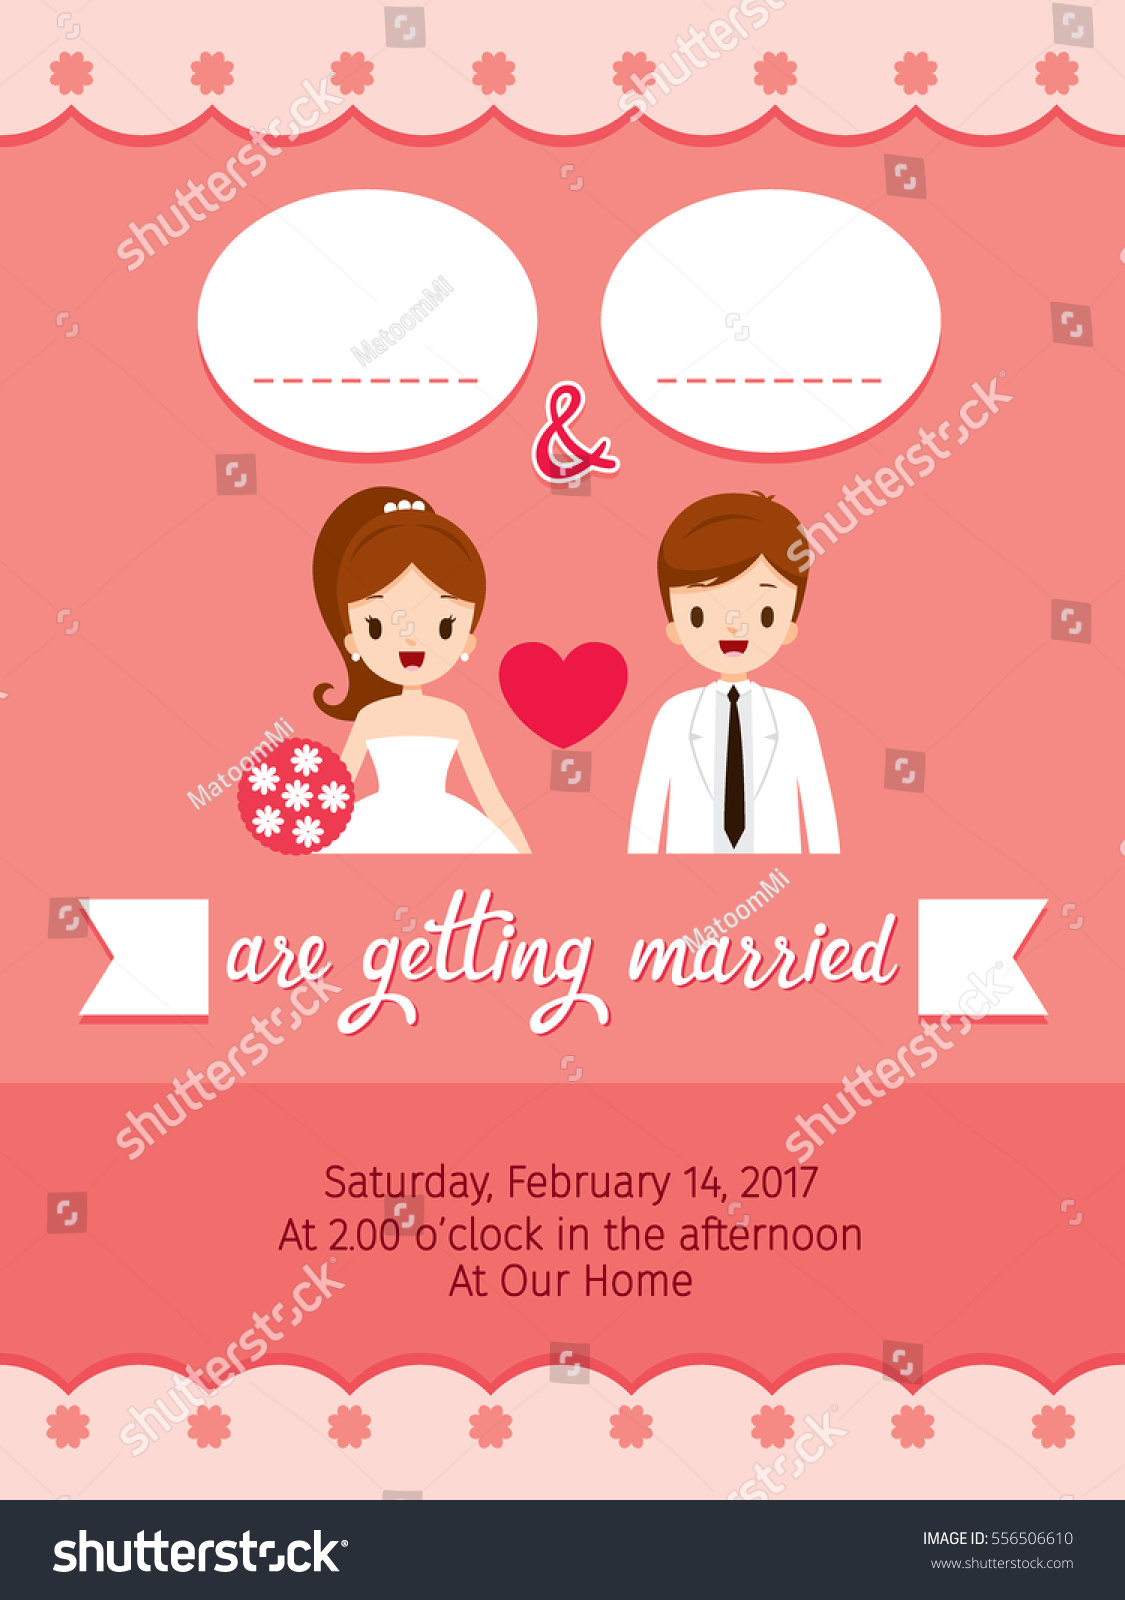 Wedding Invitation Card Template Bride Groom Stock Photo (Photo ...